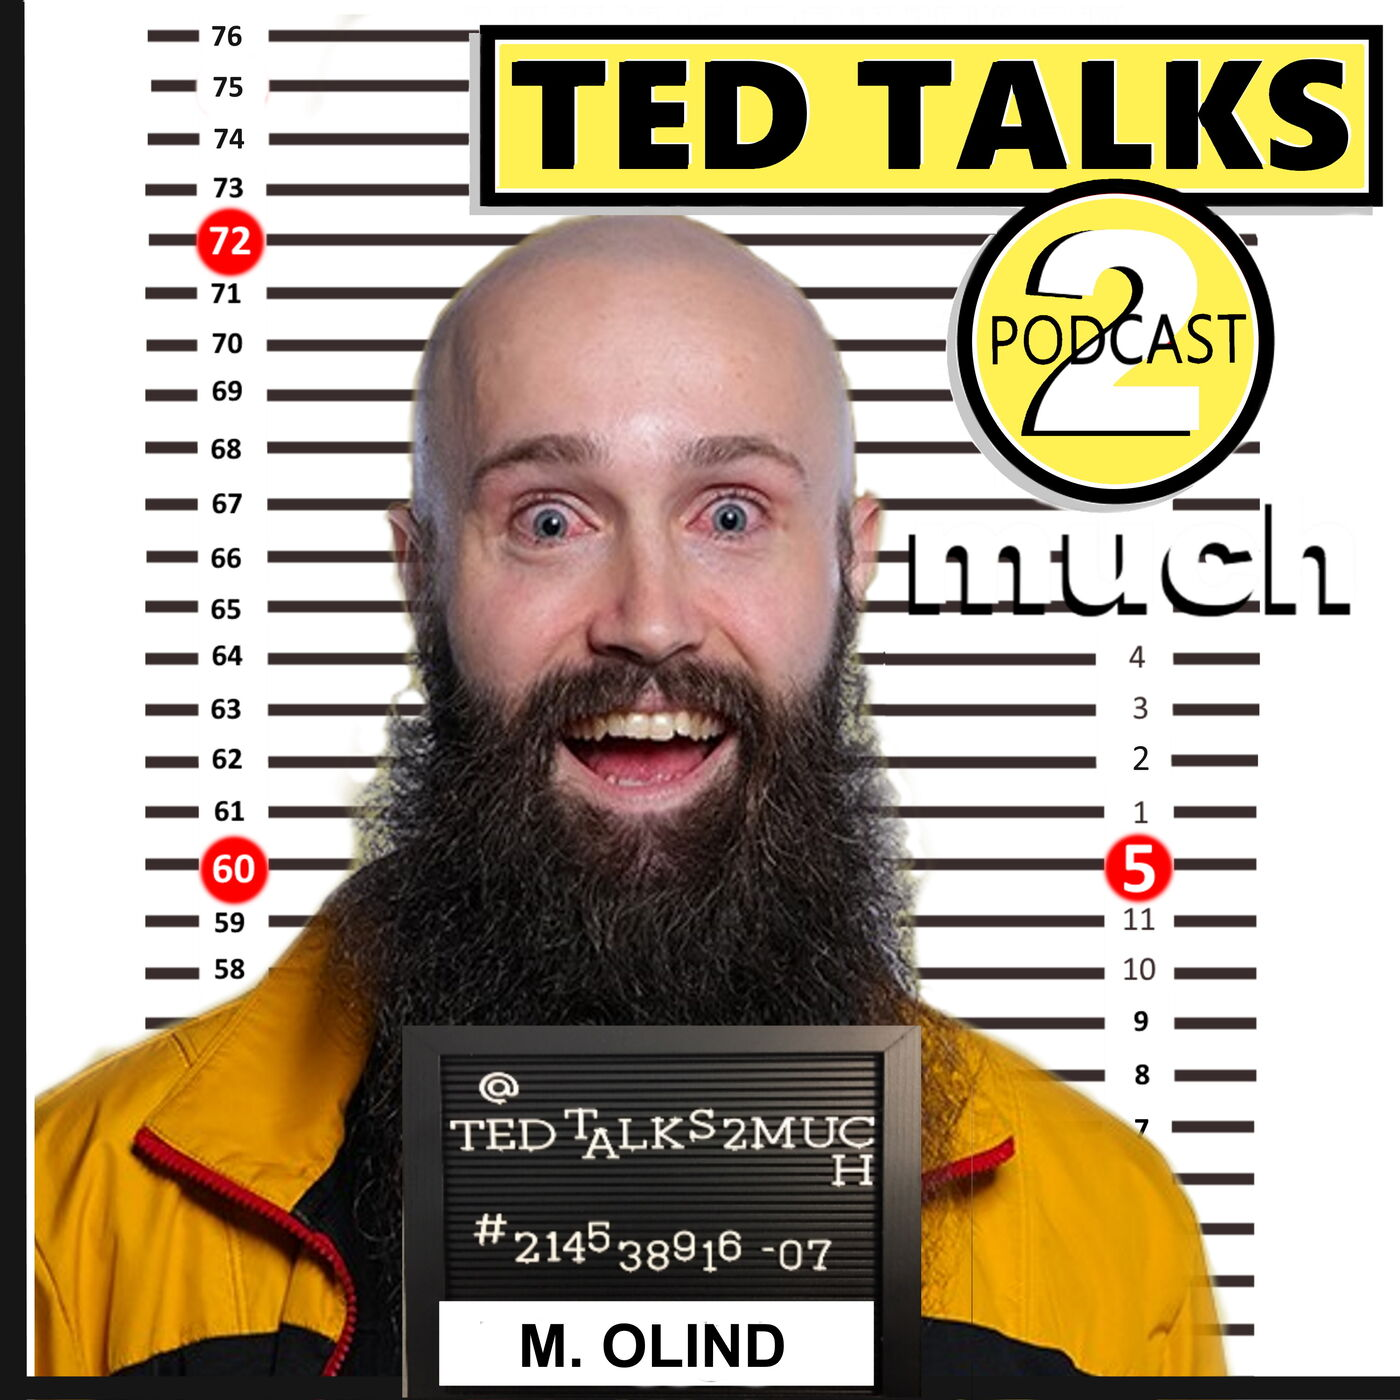 TED TALKS 2 Marcus Olind... about Podcasting, Smart Germans, Killing Cats & Stand Up Comedy